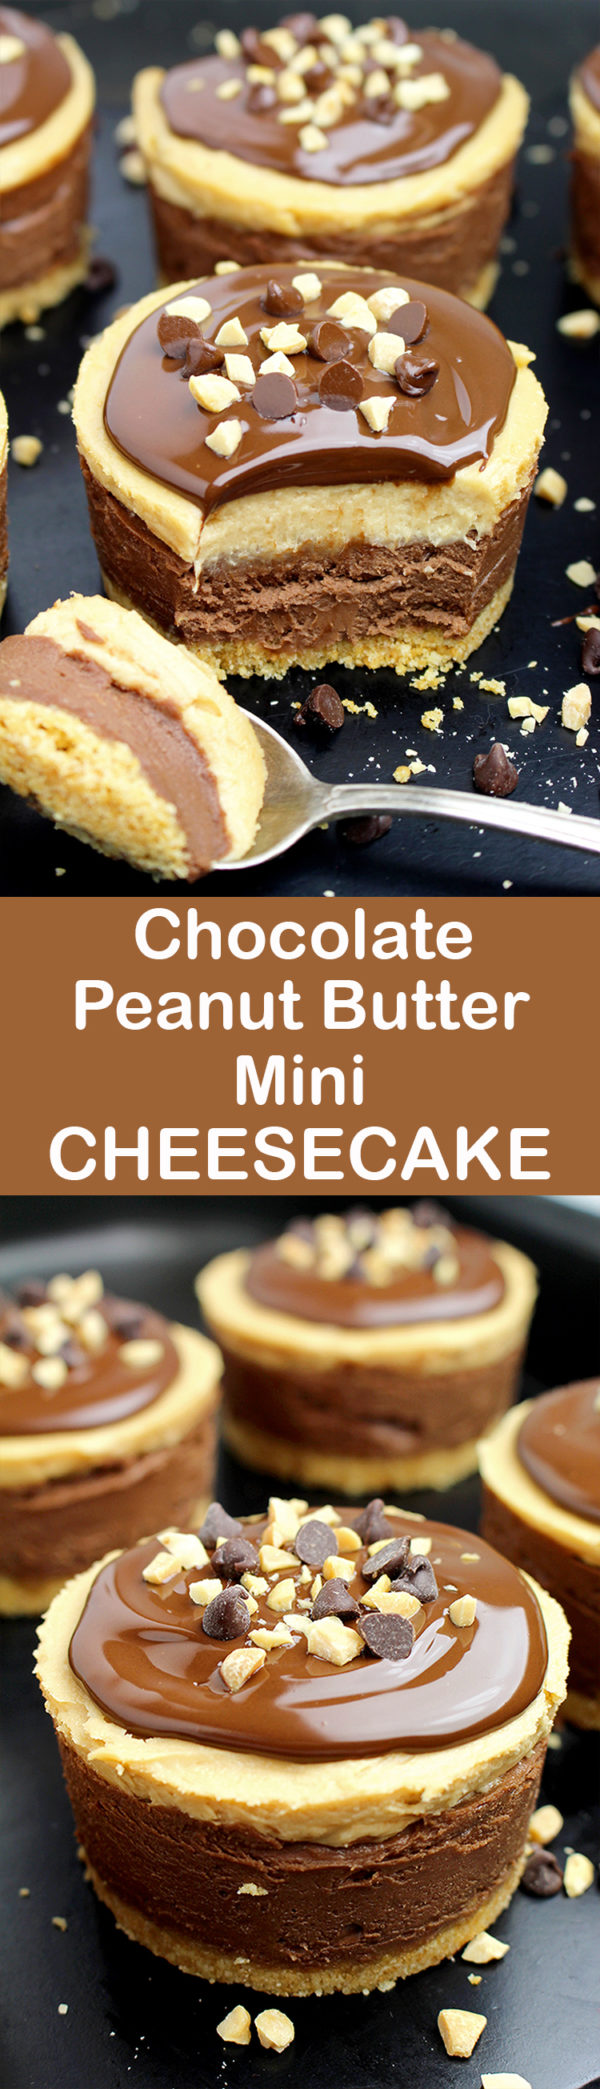 No Bake Chocolate Peanut Butter Mini Cheesecake is part of Desserts - Chocolate and peanut butter, do you like this combination  If your answer is yes, we have an awesome dessert for you No Bake Chocolate Peanut Butter Mini Cheesecake